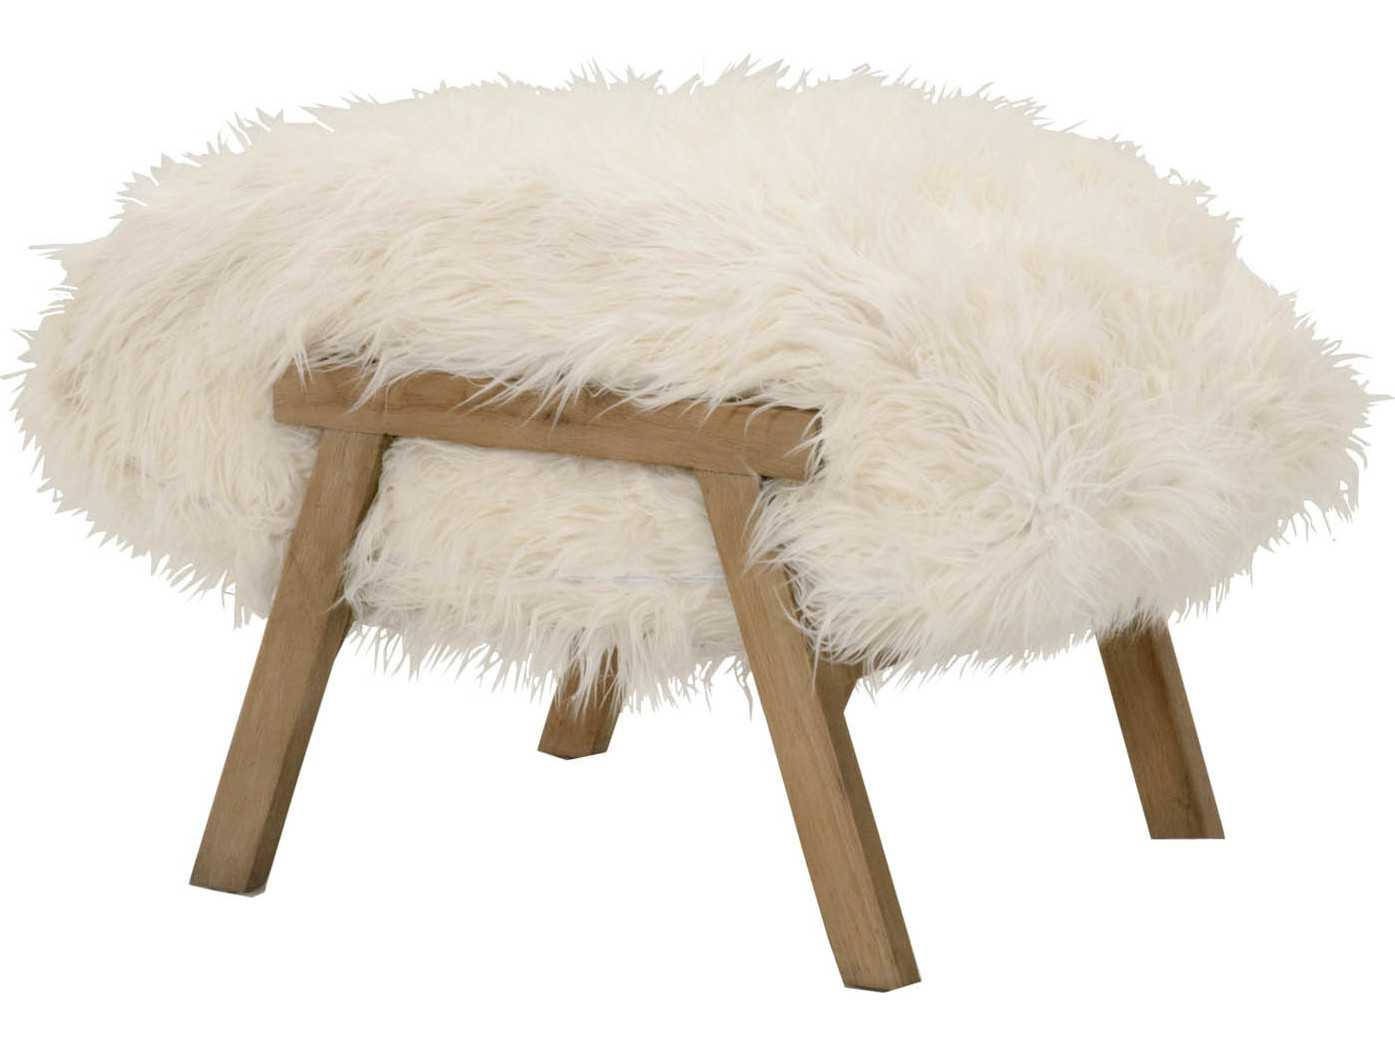 orient furniture express bella antique tibet white fur ott with tibetan drum accent table smoke gray oak legs black glass living room tables decor bath filler outdoor lamps corner